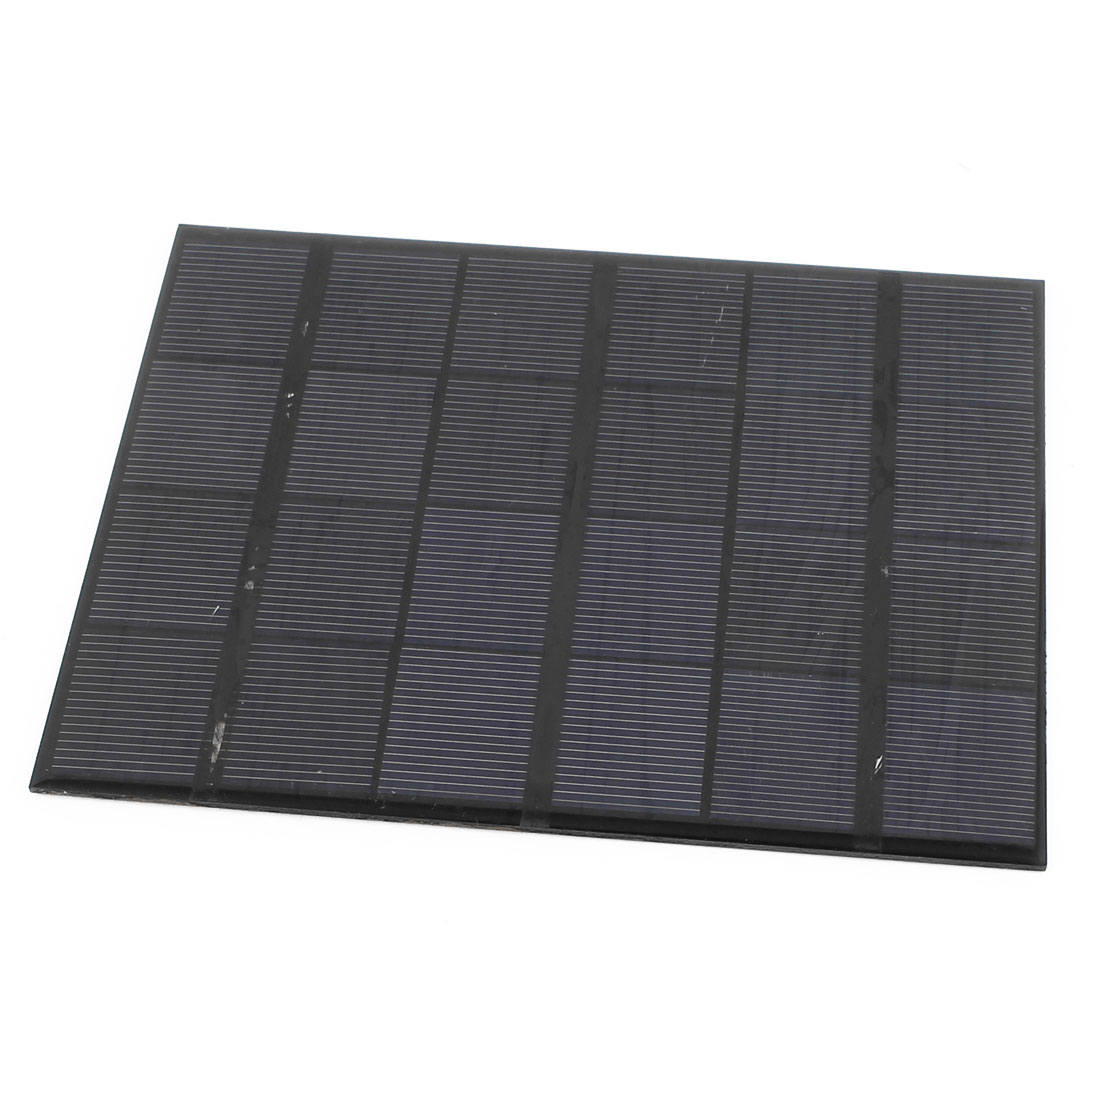 DC 6V 3.5W Square Energy Saving Solar Cell Panel Module 165x135mm for Charger